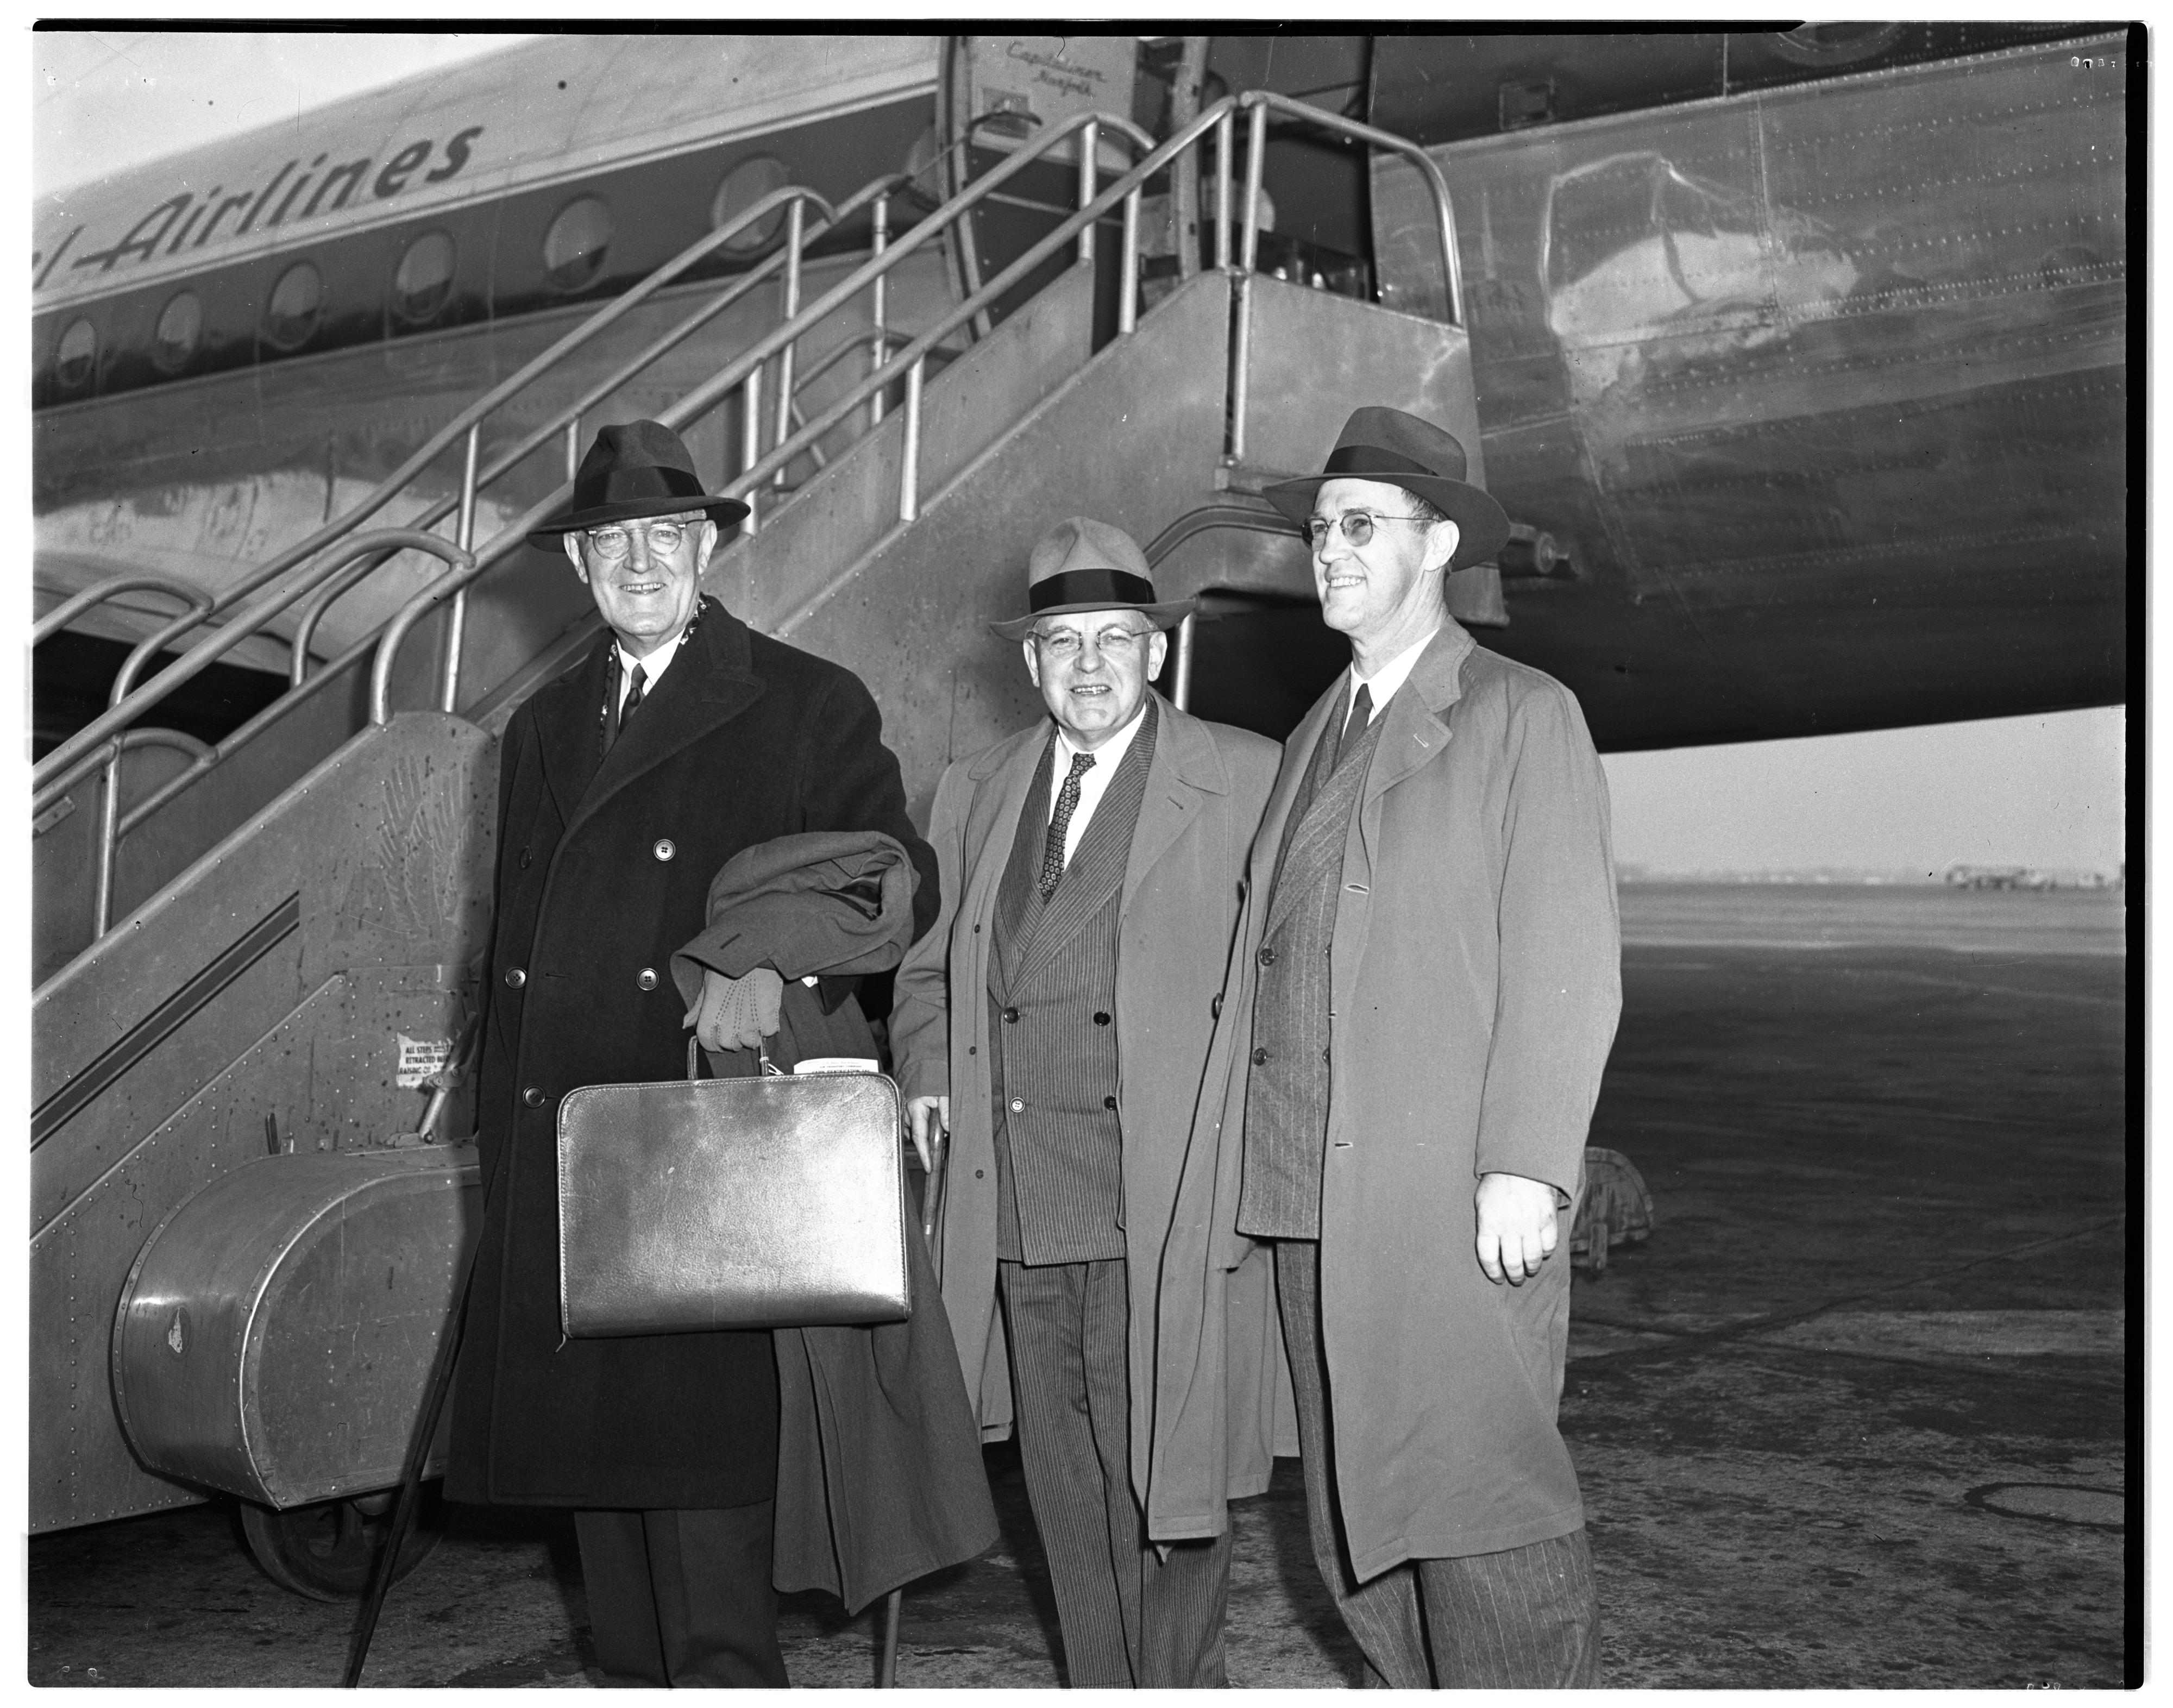 George J. Burke, Ann Arbor attorney, returns from war crimes trials in Germany, February 27, 1948 image